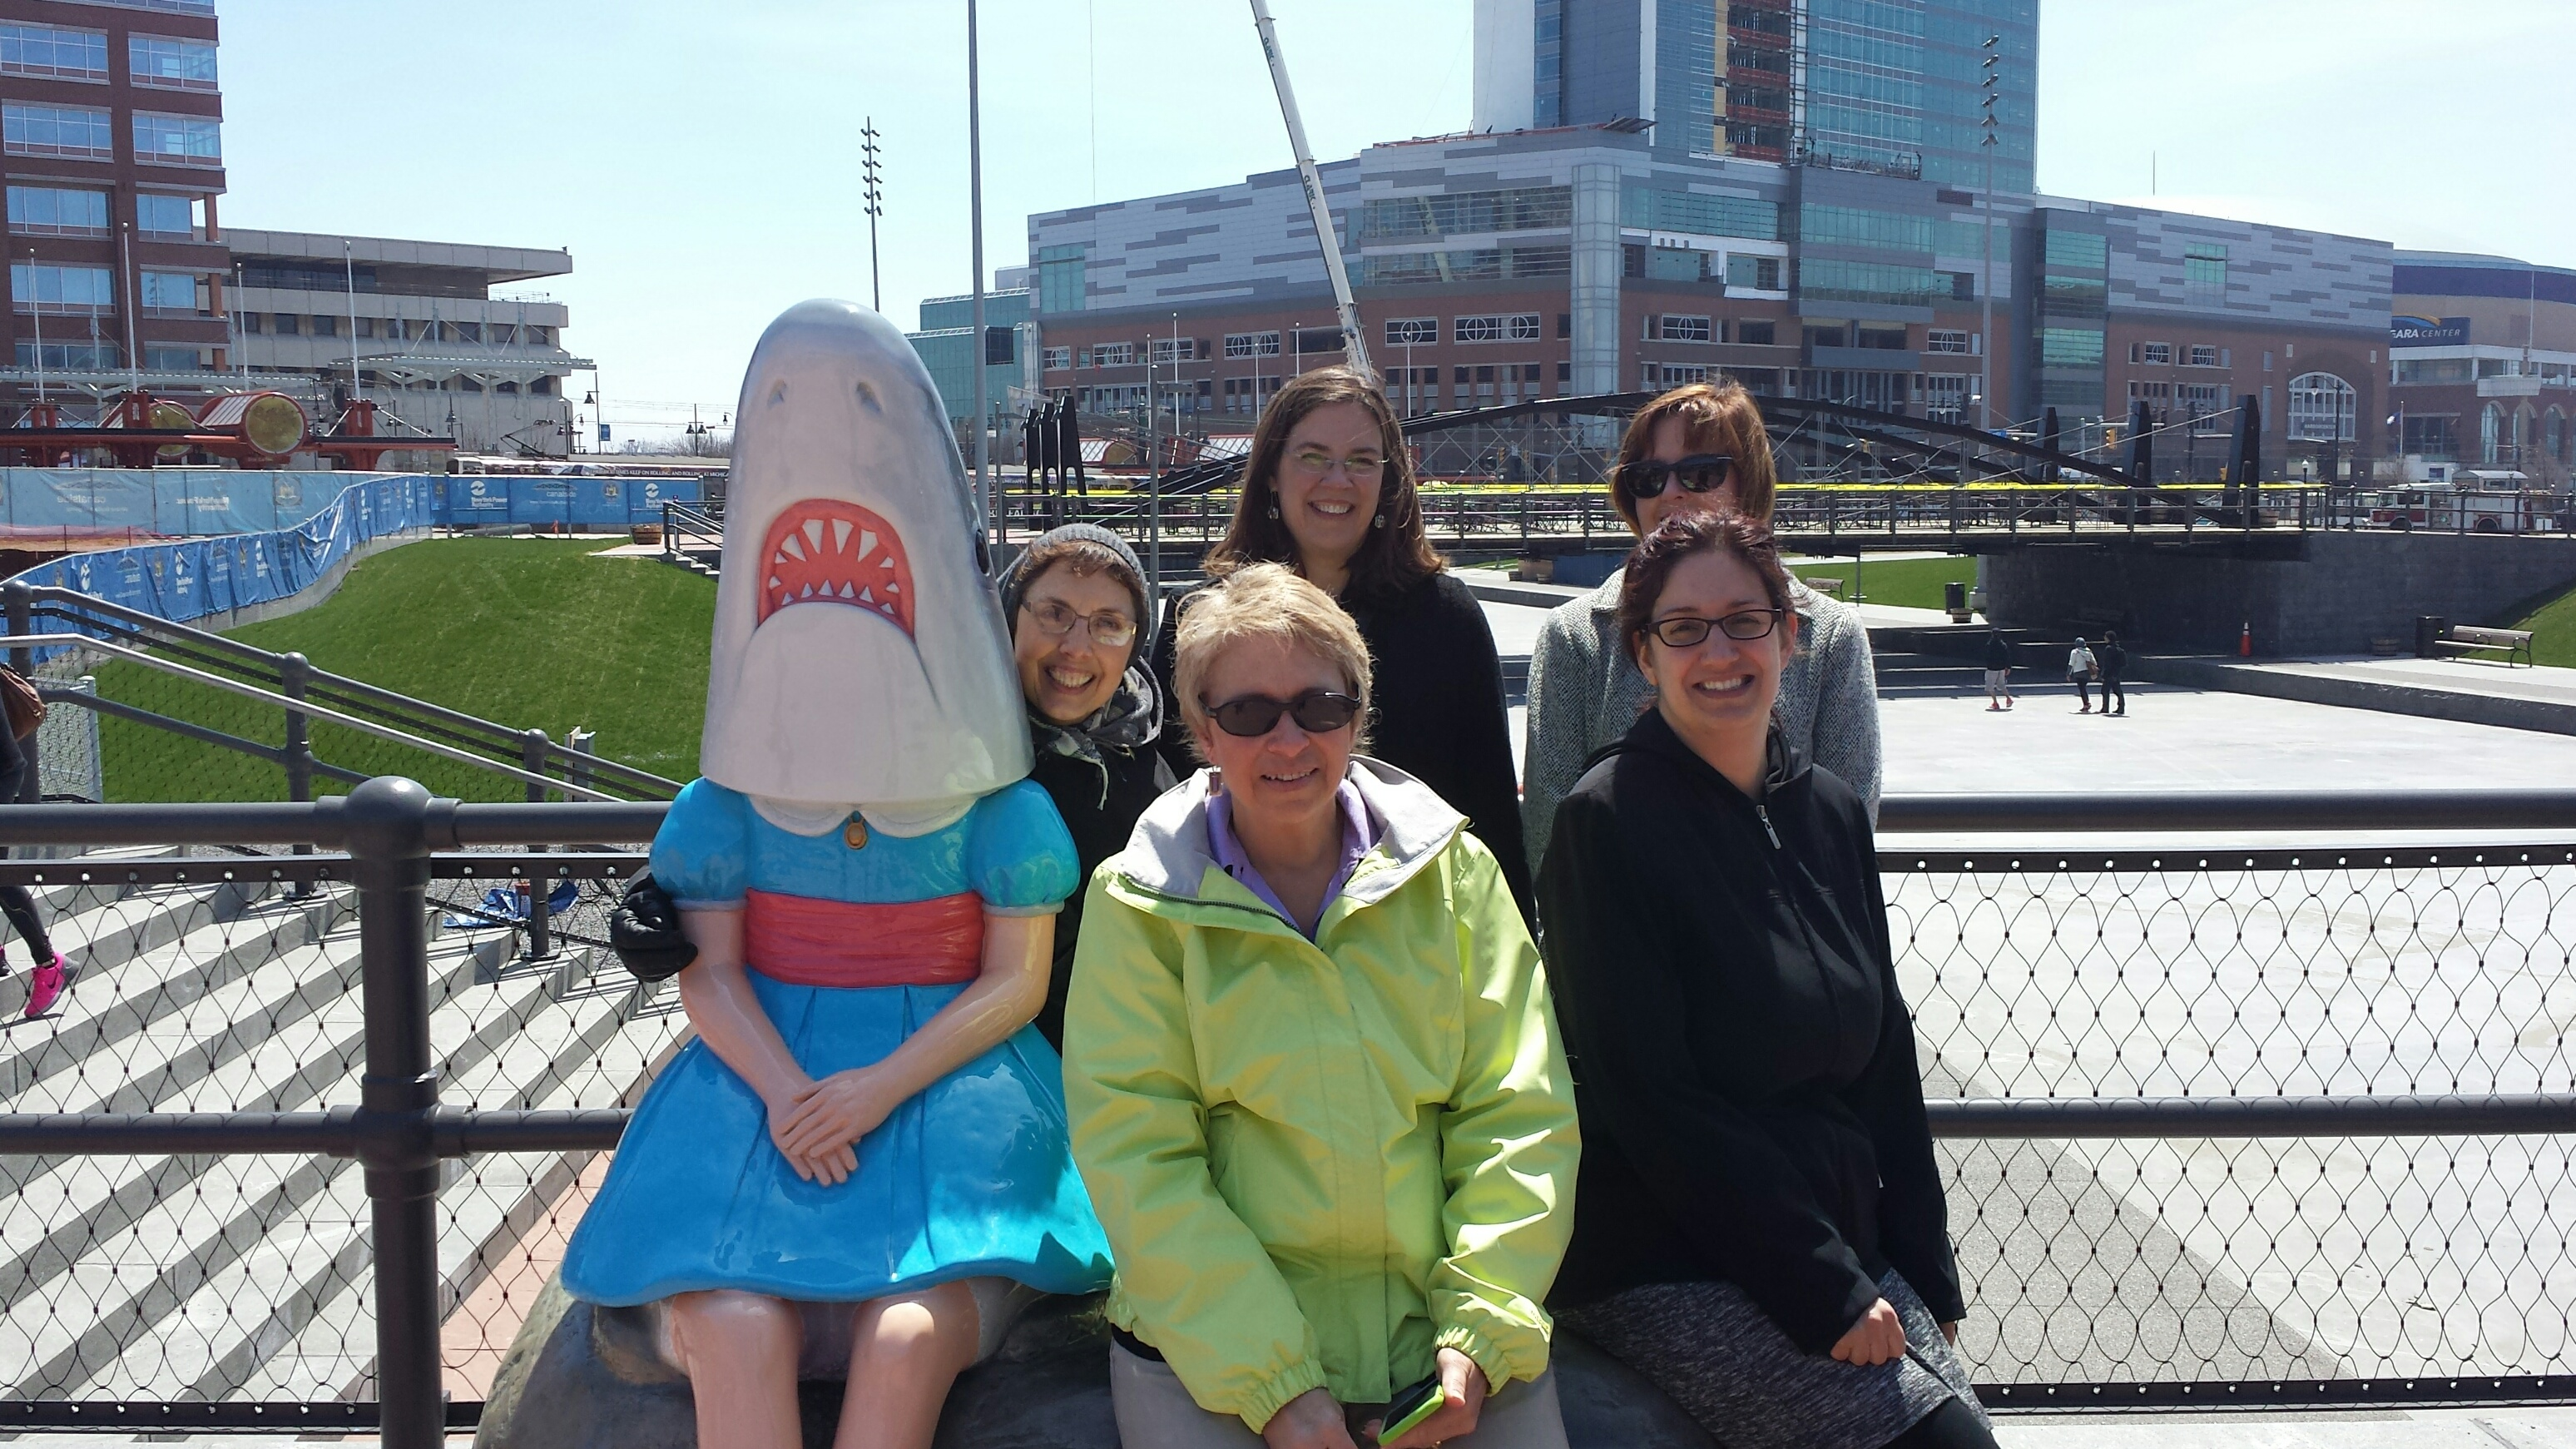 Several of those who participated  Wednesday  in National Walk at Lunch Day in downtown Buffalo stopped to pose for photos at Canalside with 'Shark Girl.' (Scott Scanlon)